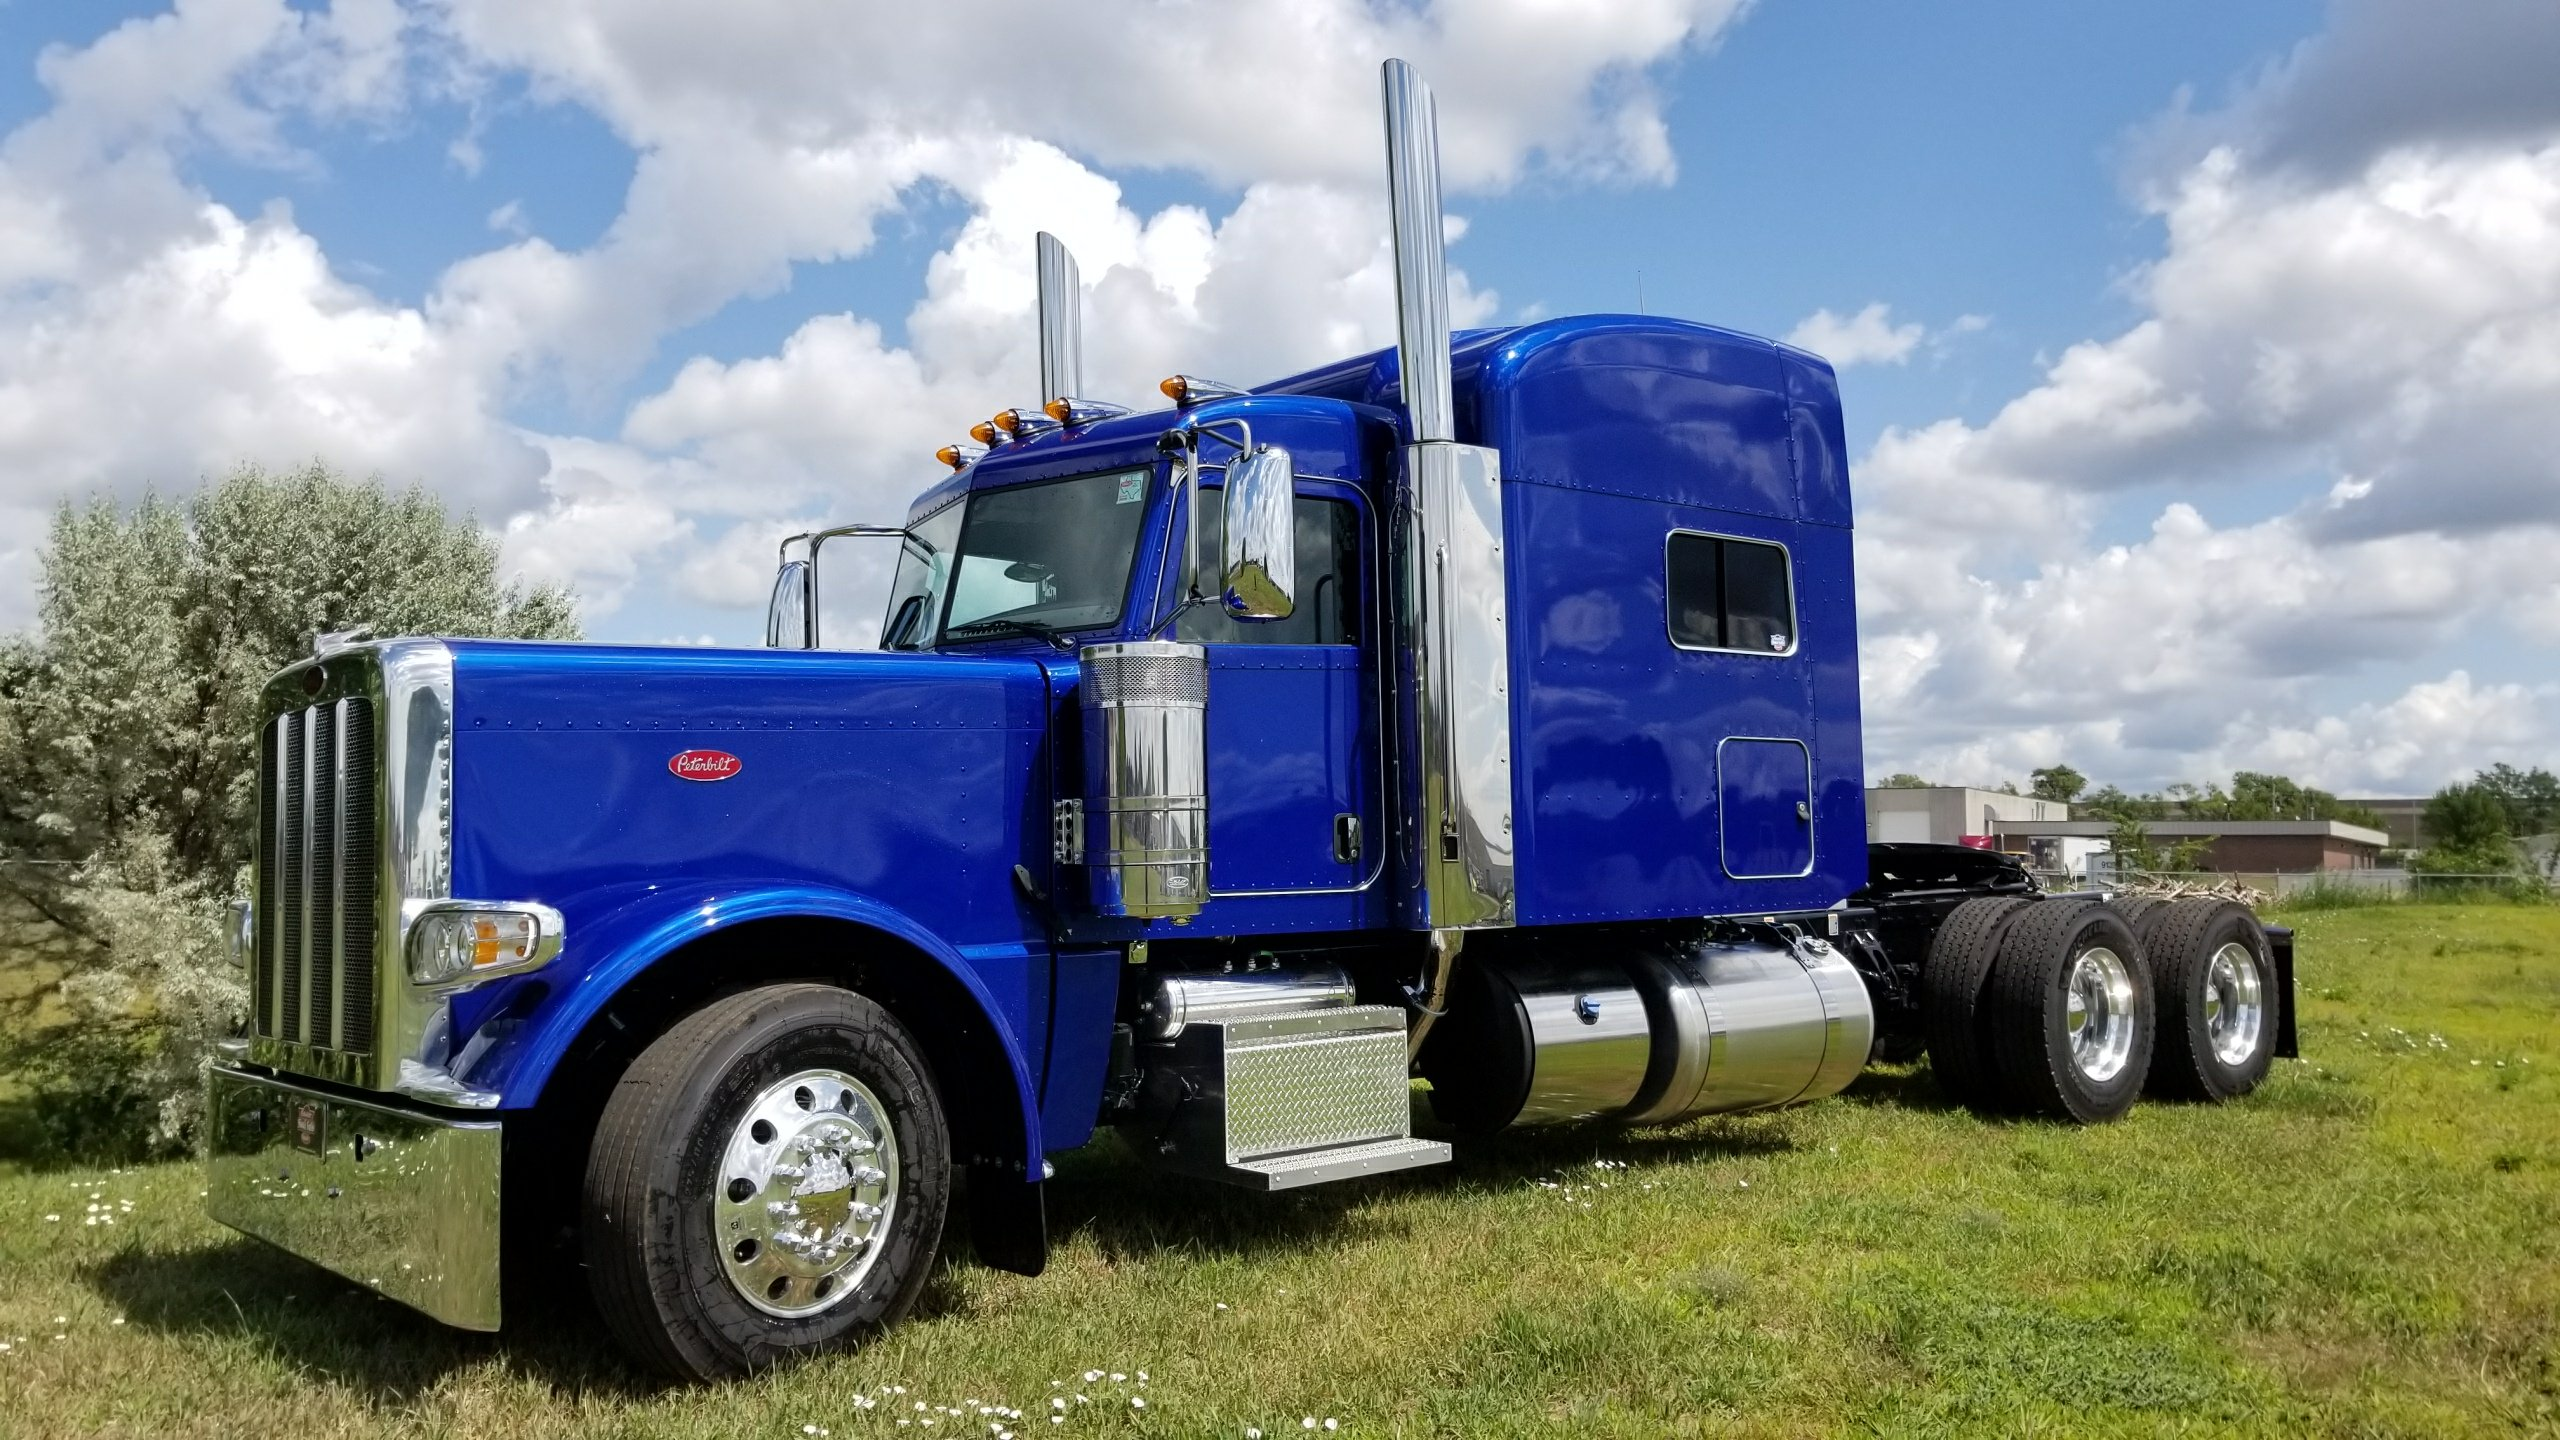 Wallpaper Stores In Sioux Falls Sd 2018 Viper Blue Stand Up 389 Just In Peterbilt Of Sioux